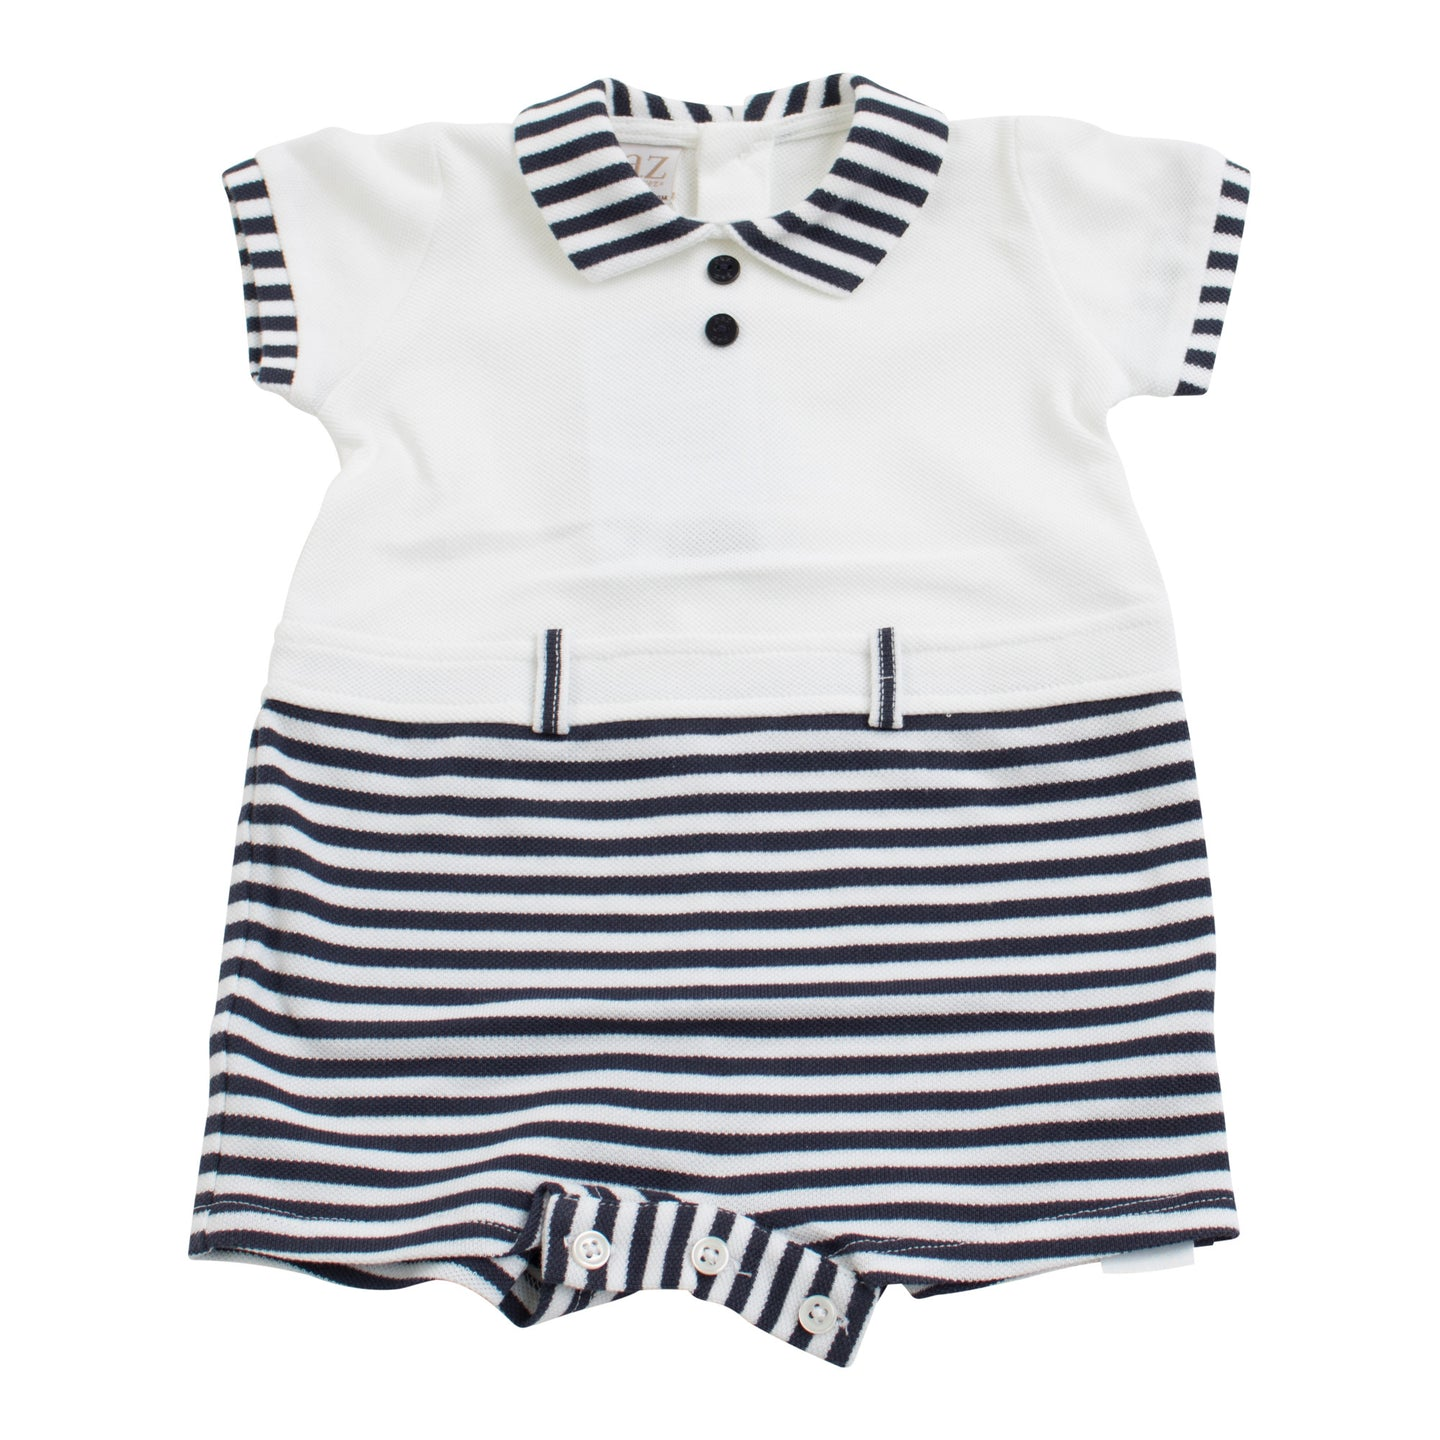 Paz Rodriguez Knitted Navy and White Baby Short Sleeve Romper